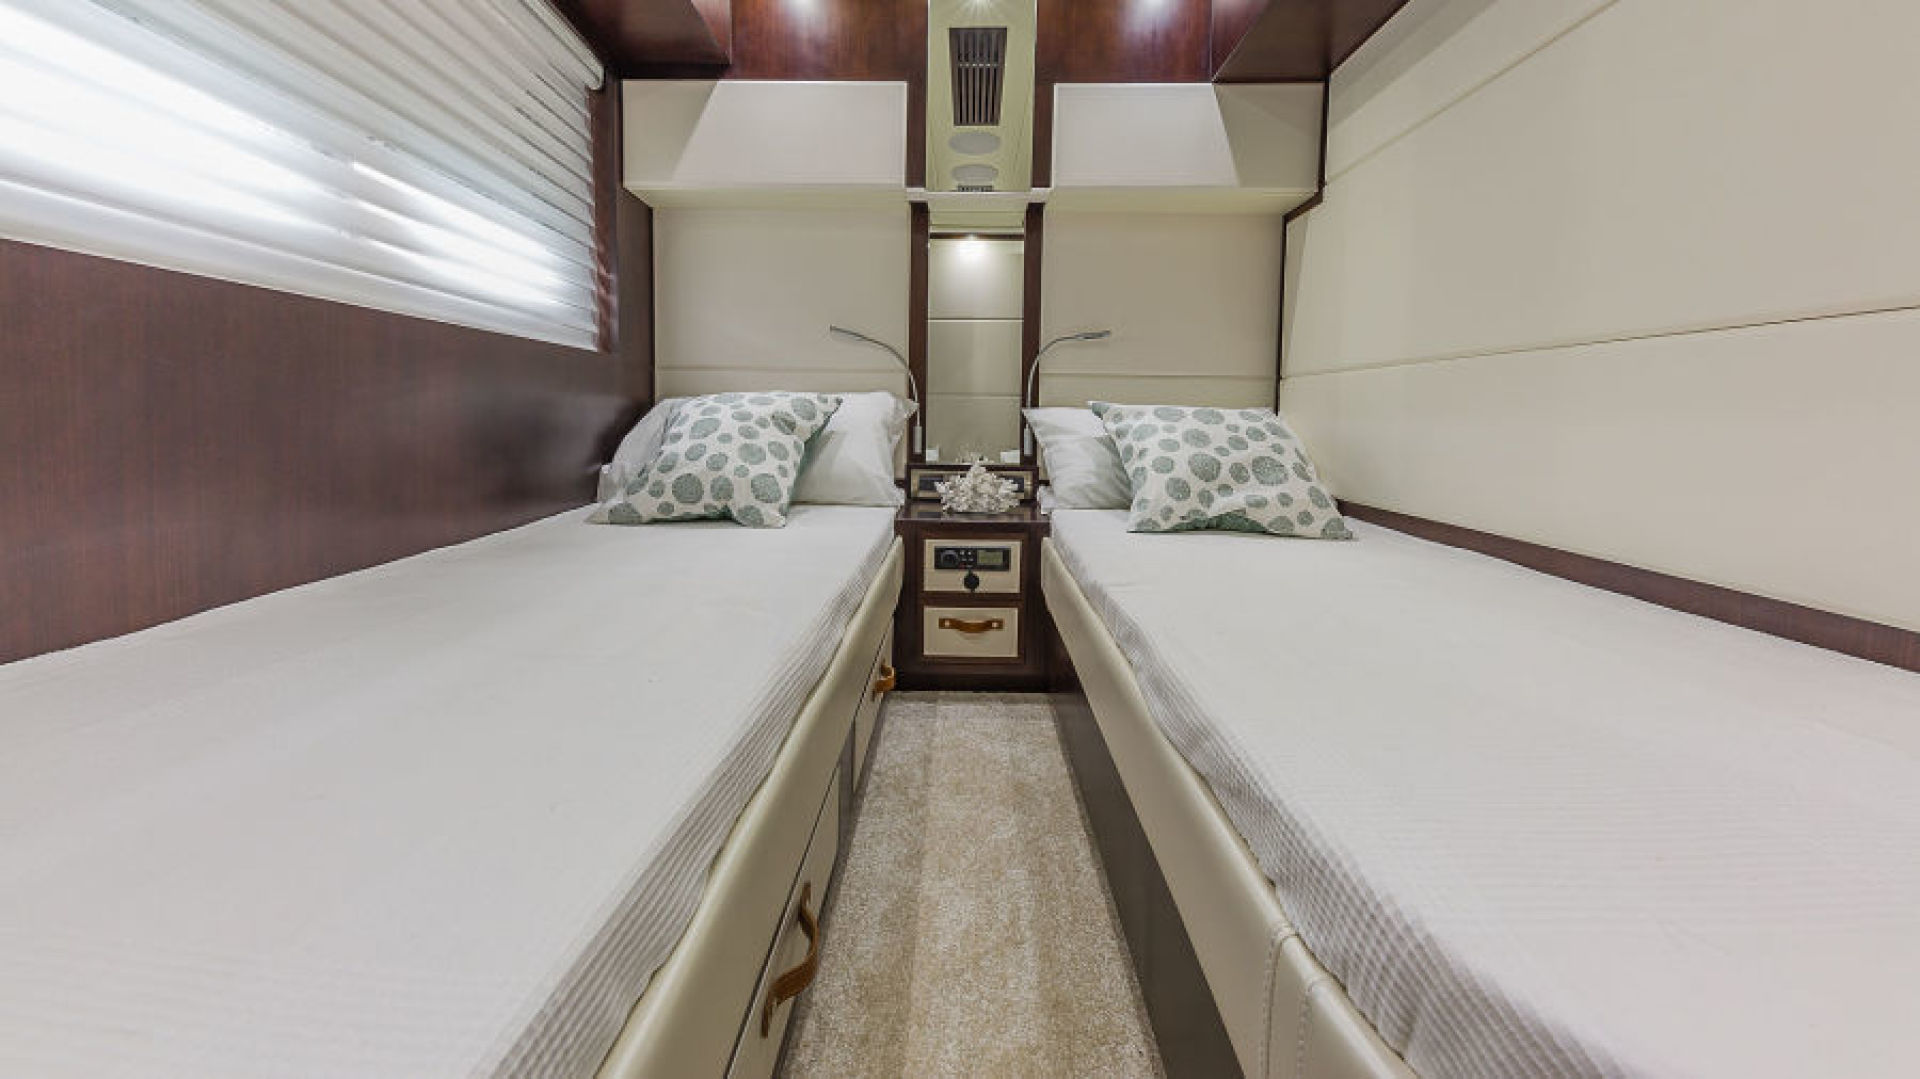 Dyna Yachts-68 Skylounge 2021 -Stuart-Florida-United States-Stbd. Guest Stateroom-1490028 | Thumbnail